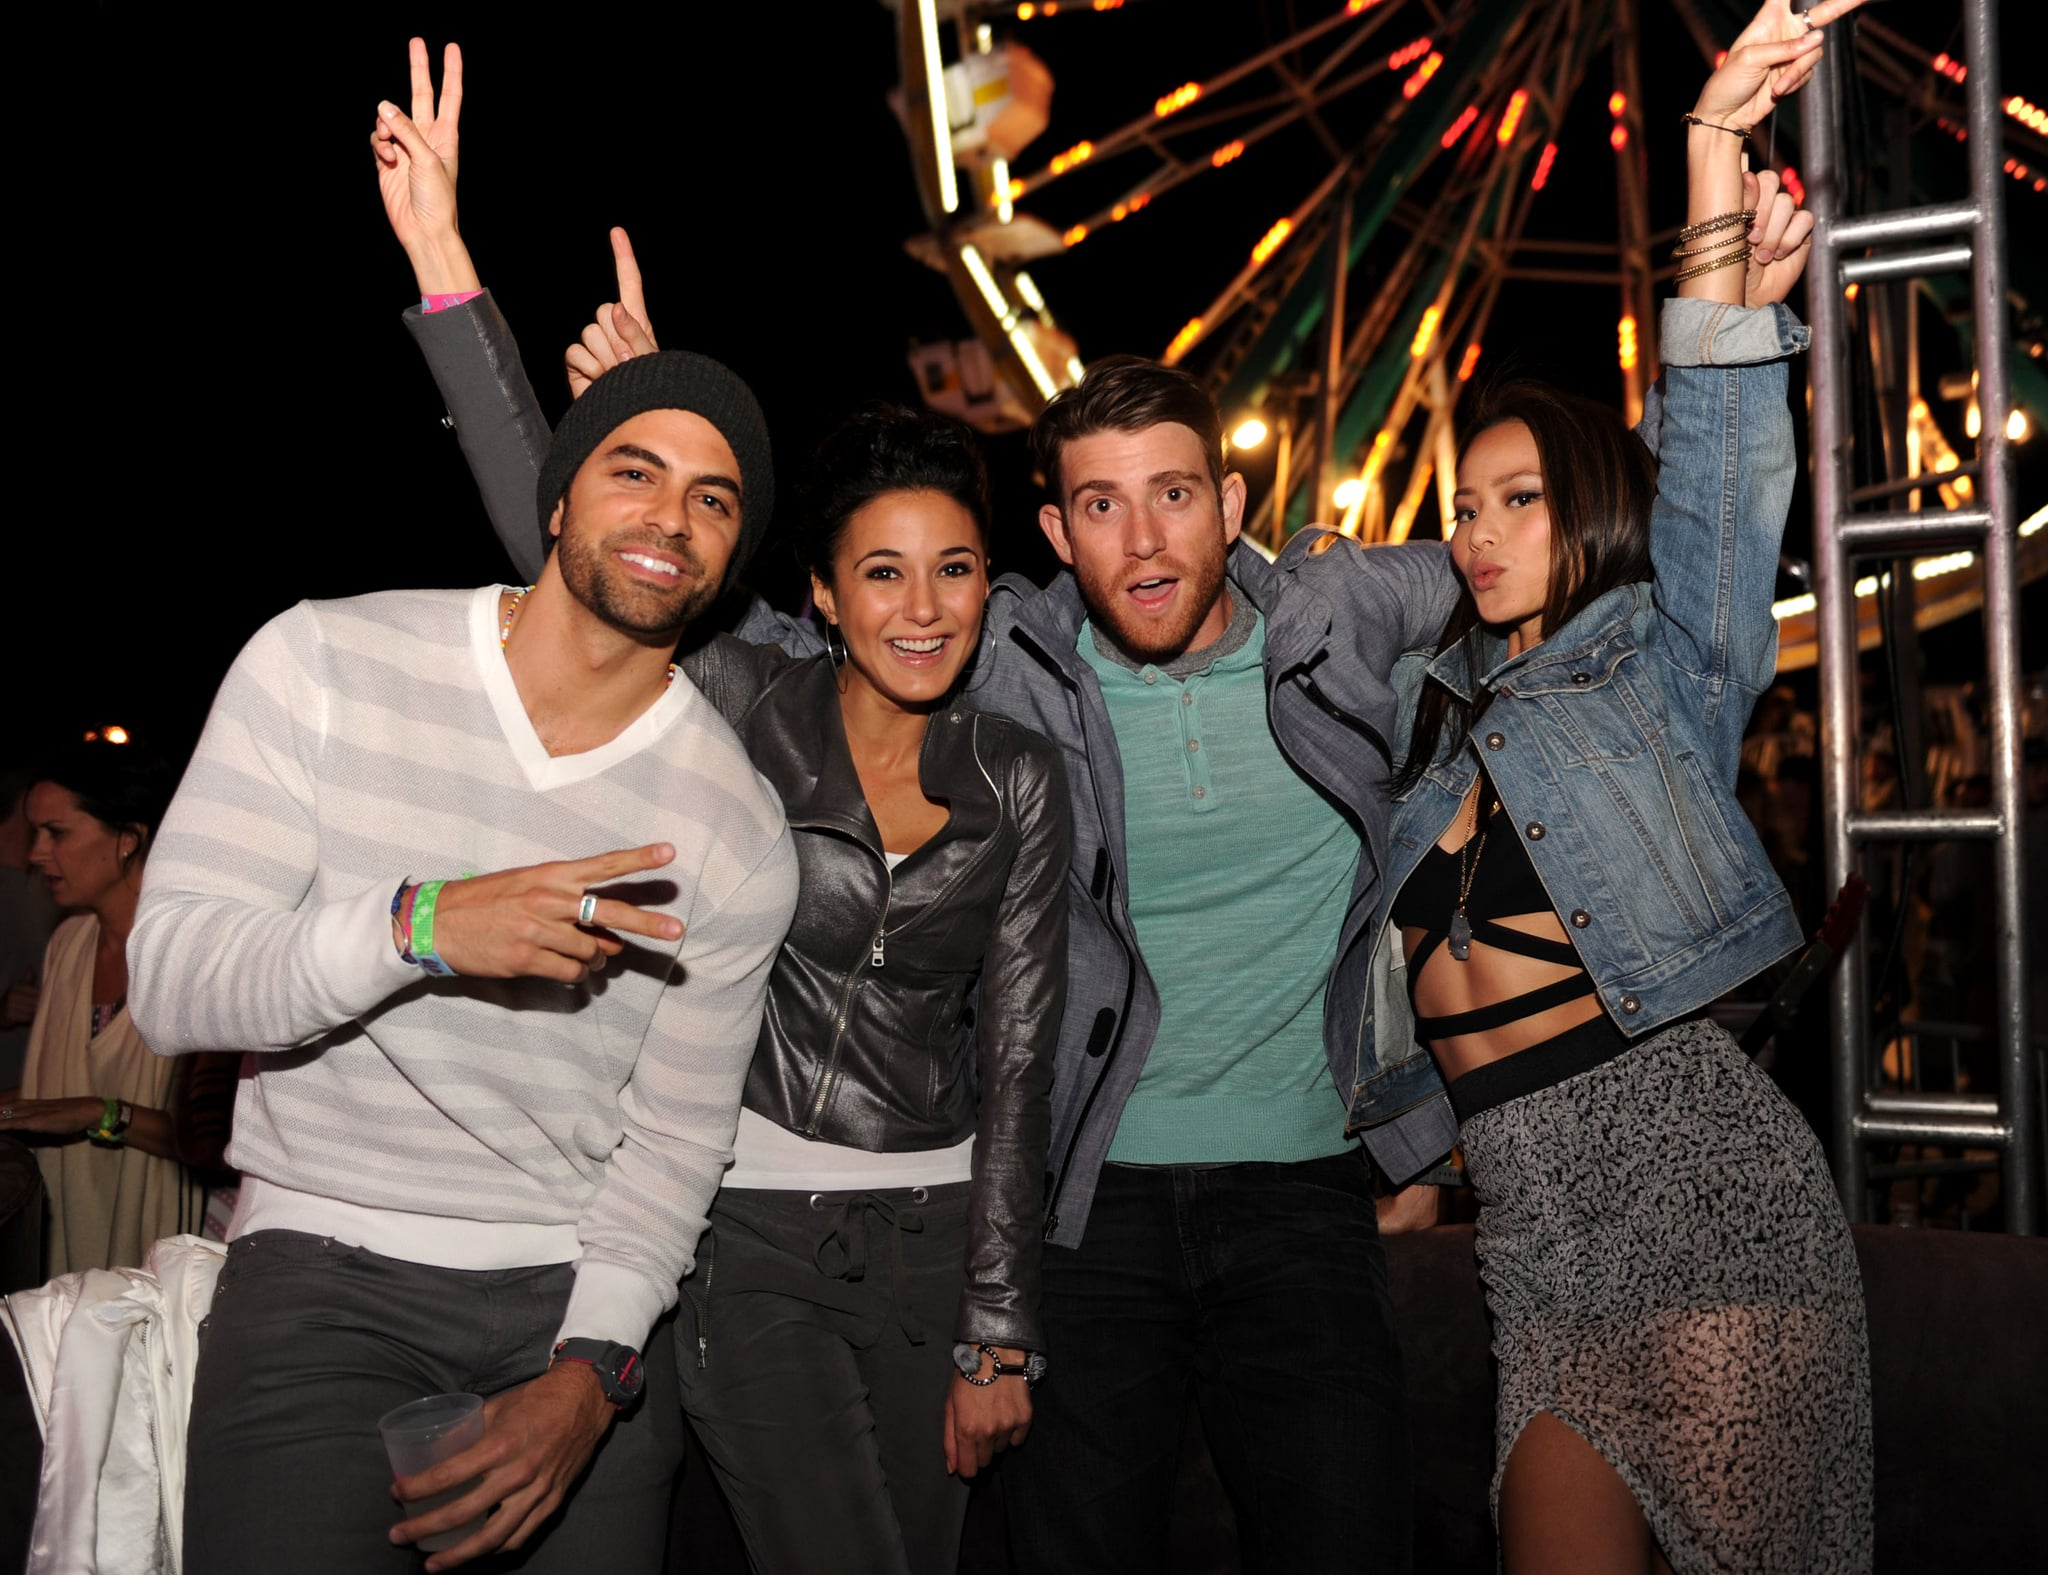 Bryan Greenberg and Emmanuelle Chriqui took a photo with friends.